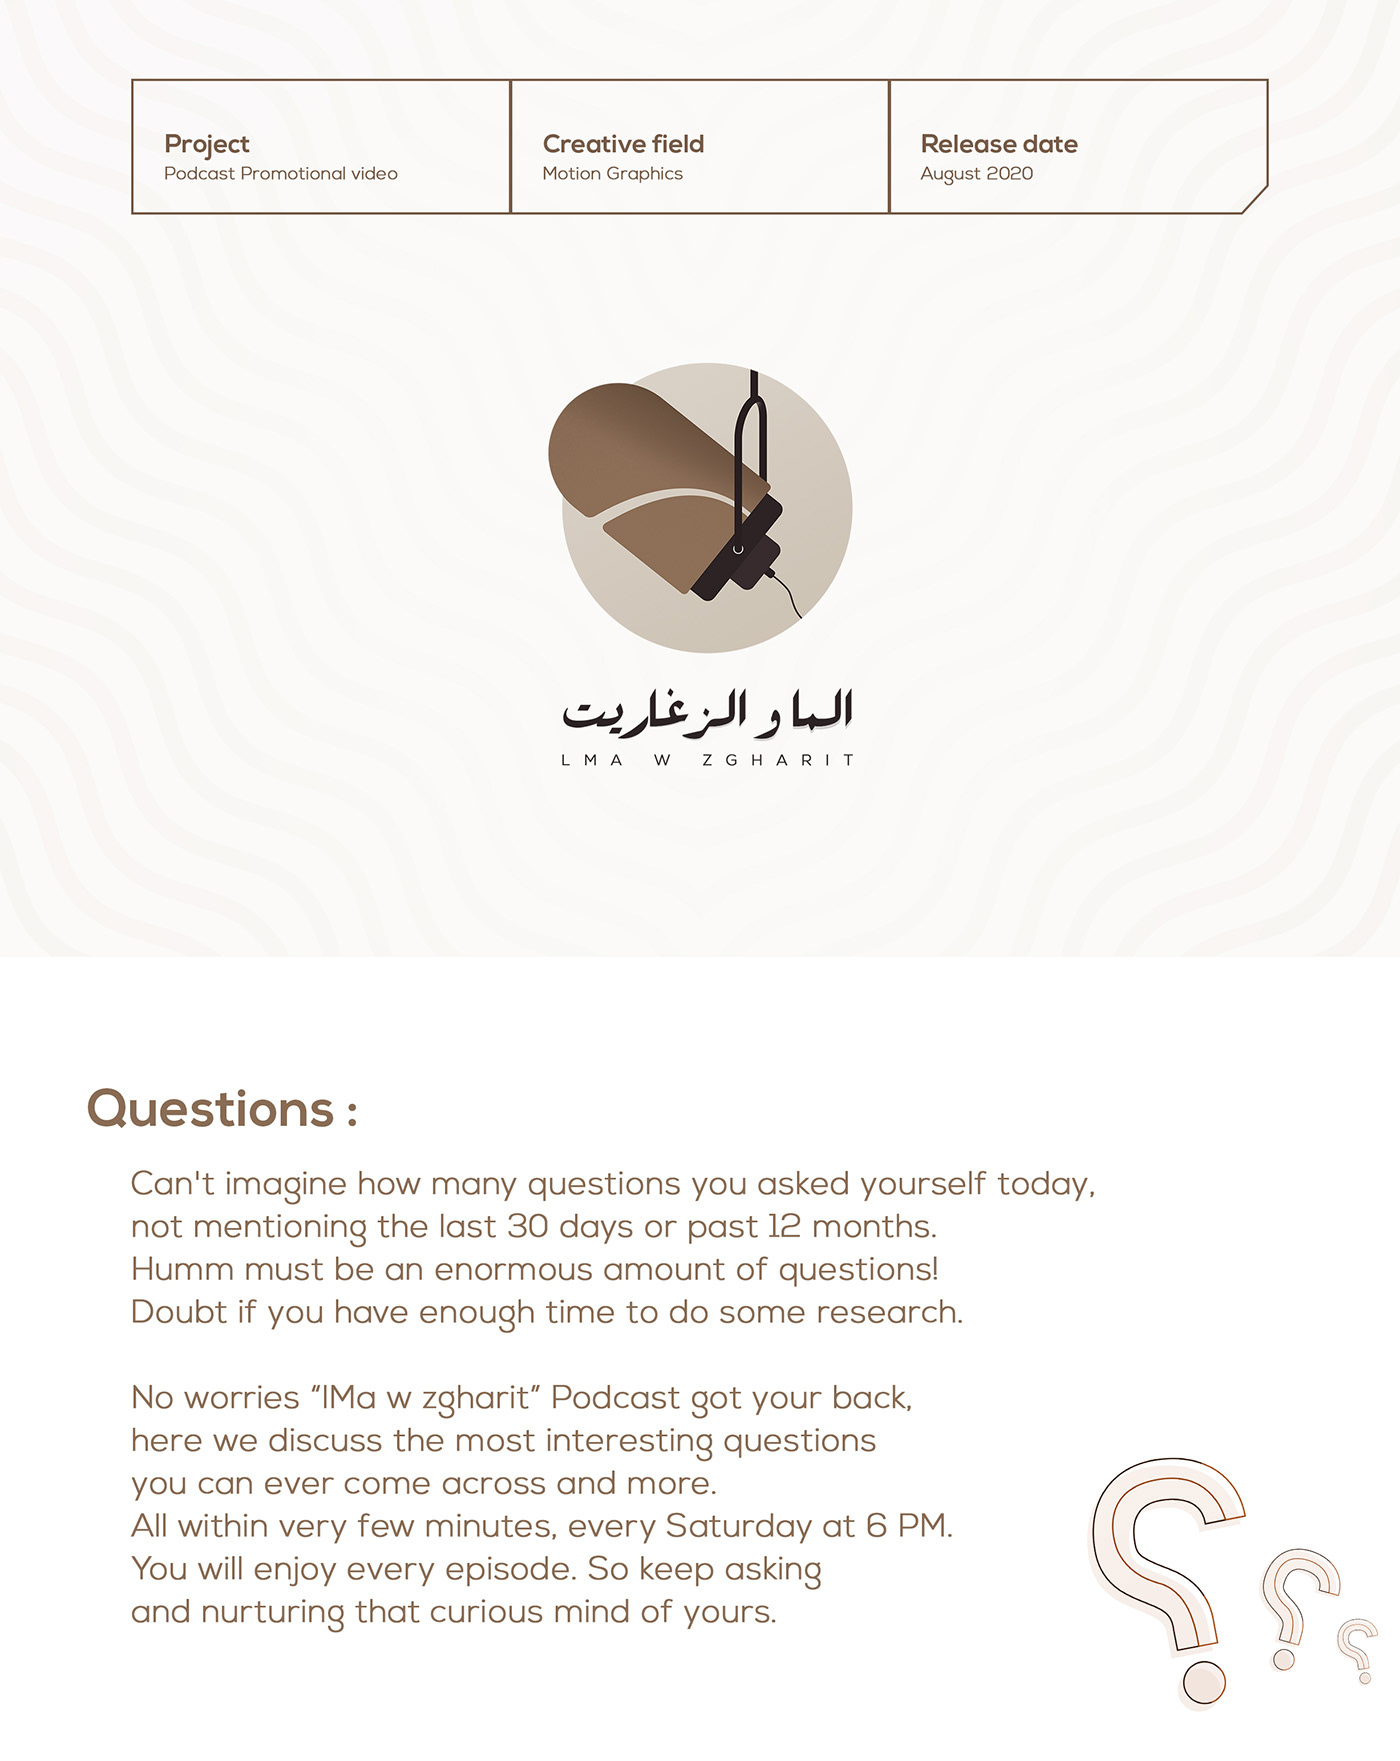 lma w zgharit MahfWorks Moroccan Podcast motion graphics  podcast promotional video questions weekly show